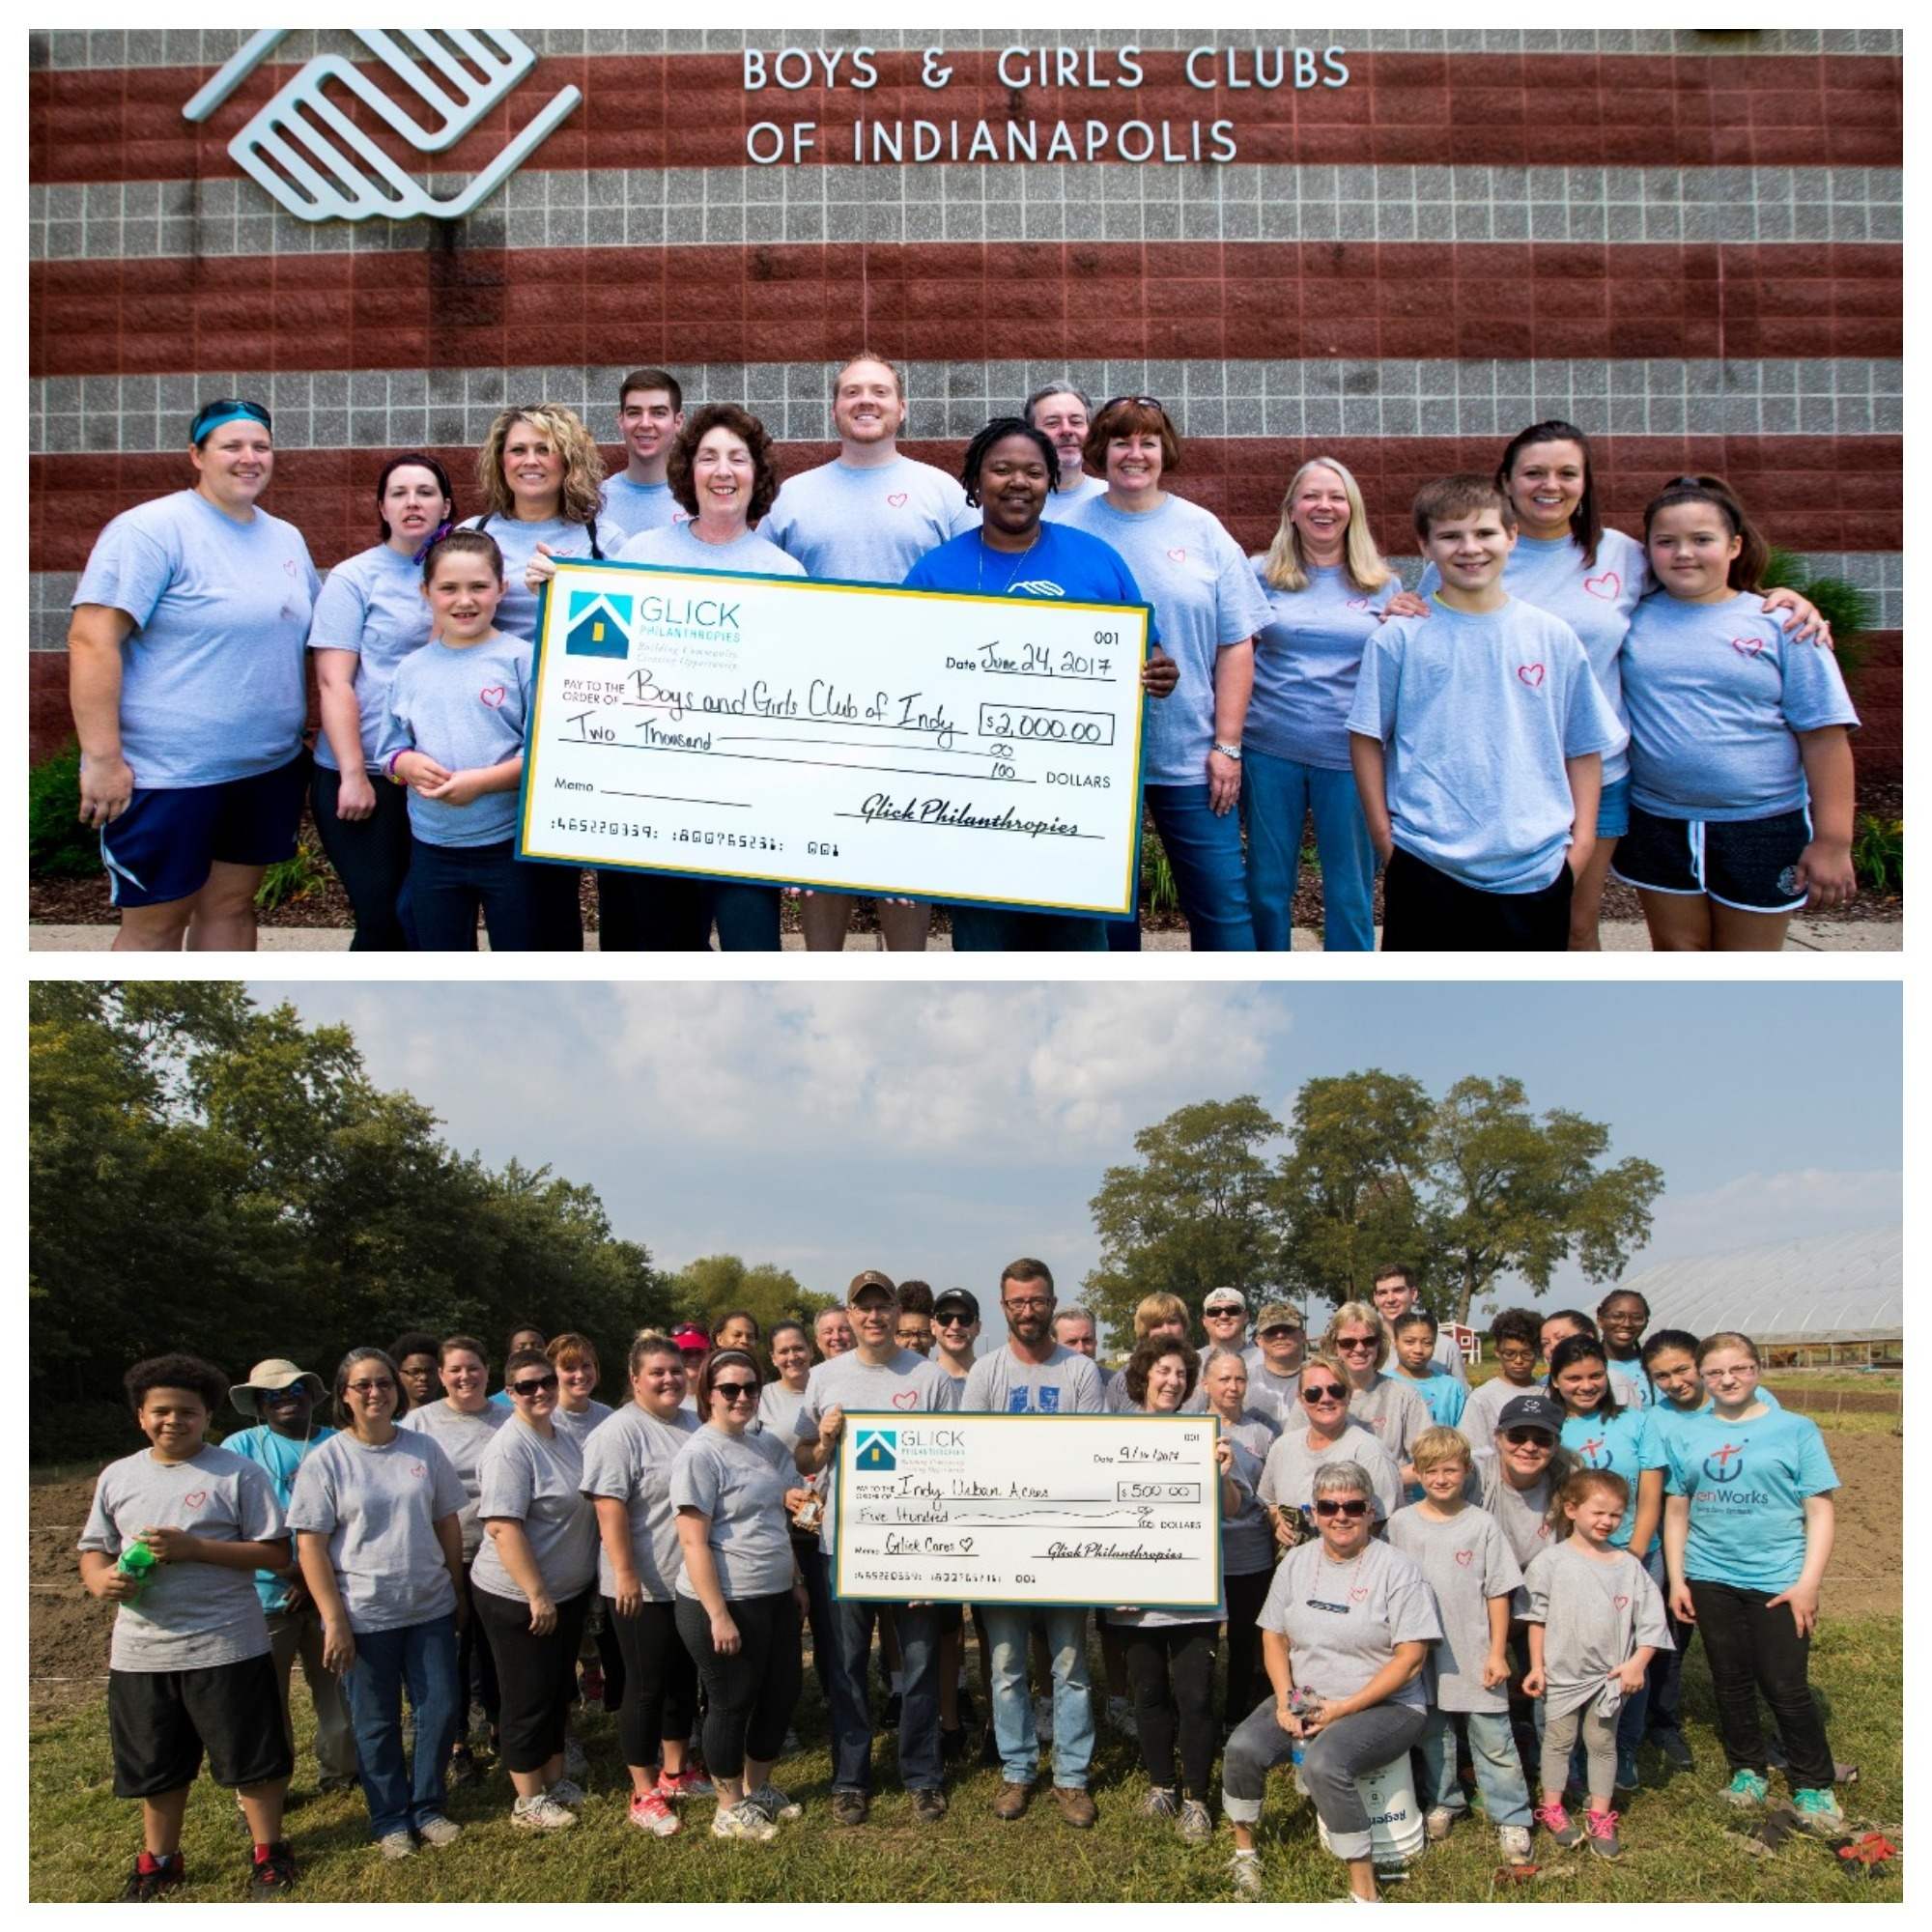 1st Place - Gene B.           Glick Company - Employees at the Gene B. Glick Company were busy in 2017, volunteering over 3,300 hours to make their communities better places to live, work and play. View video entry below.Gene B. Glick Company has chosen TeenWorks as the recipient of ManagInc's $200 donation. TeenWorks provides teens with summer jobs that teach them the importance of self-discipline, a hard day's work, and giving back to the community.